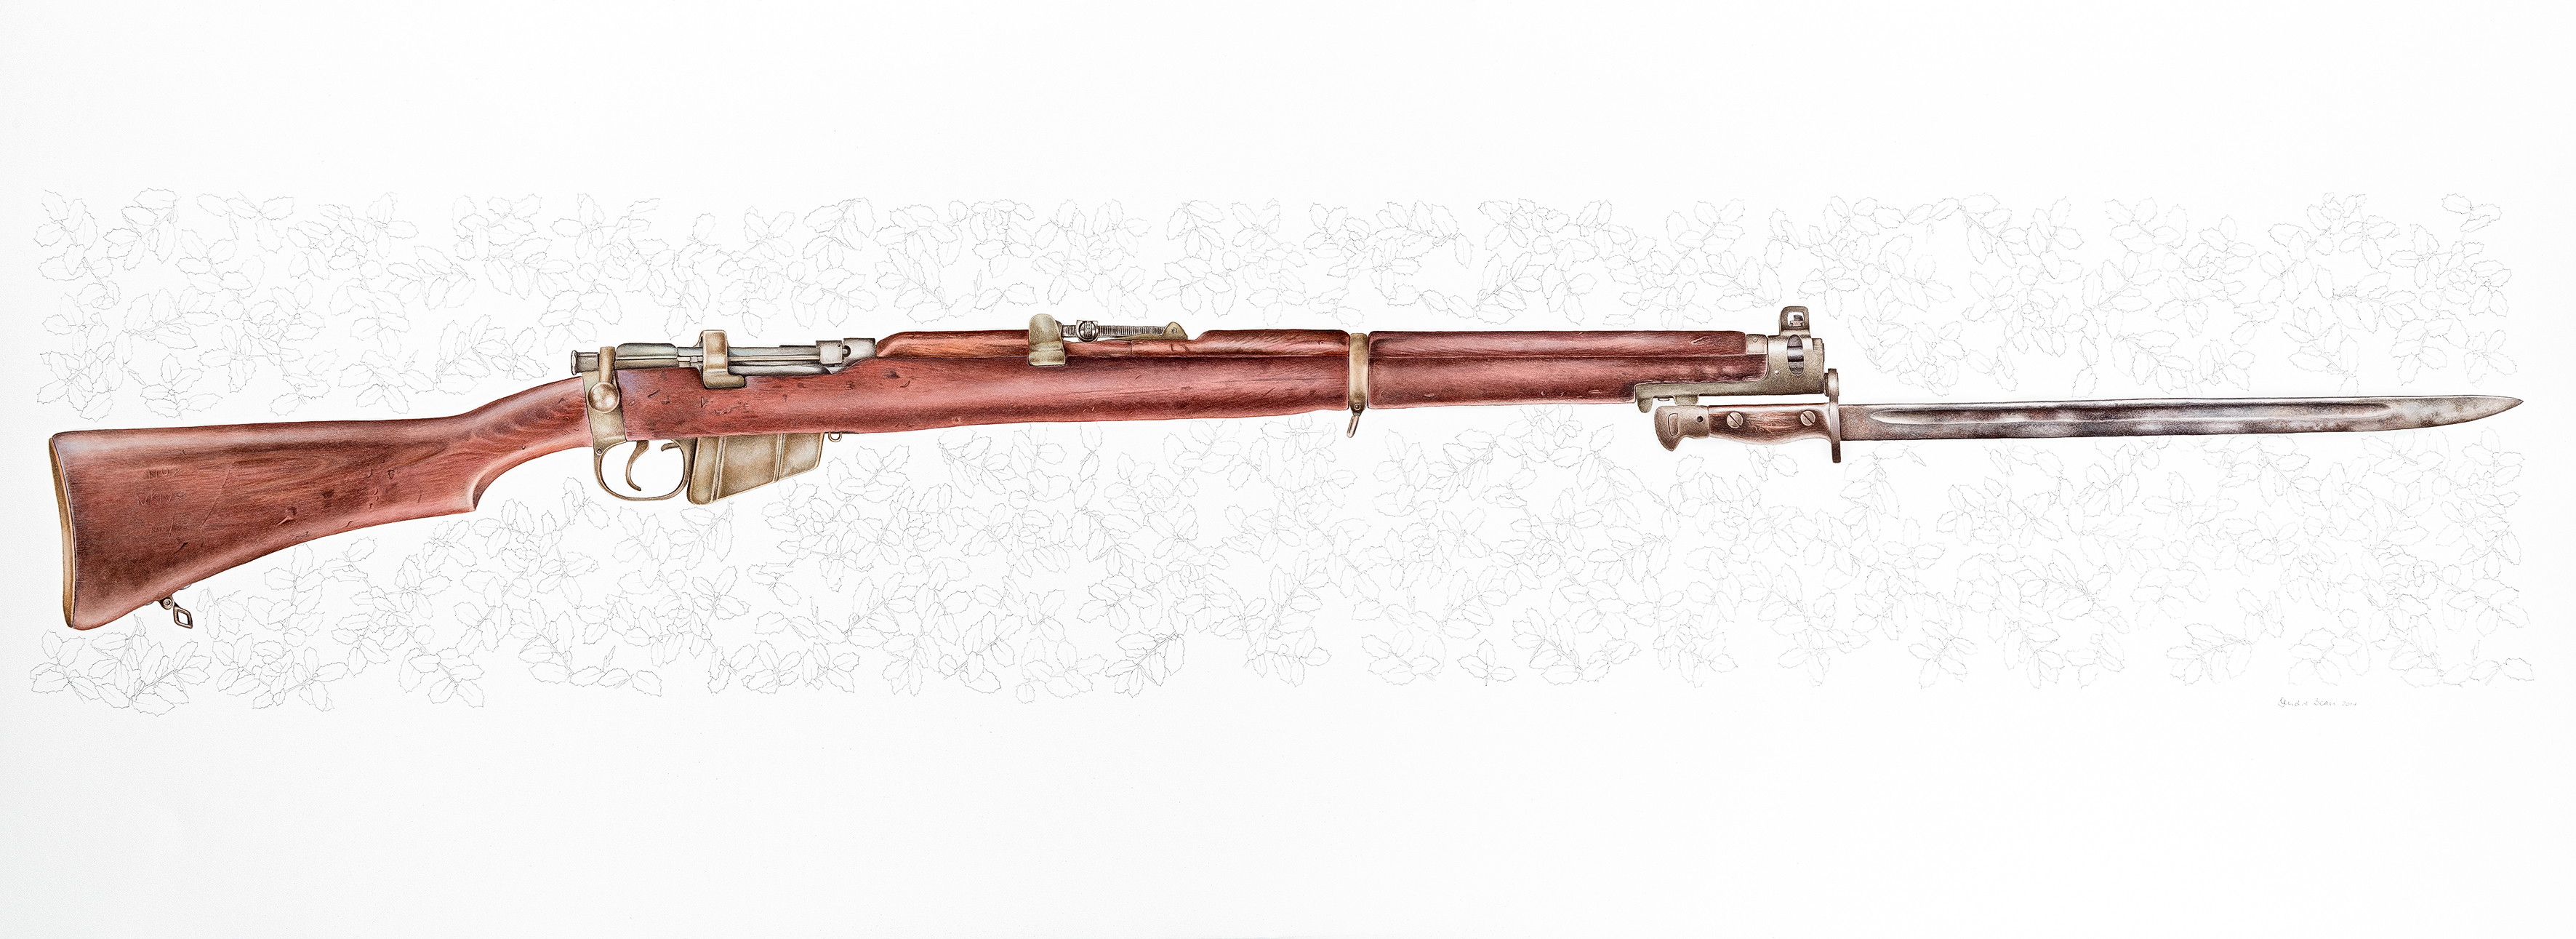 .303 Lee Enfield (holly oak)